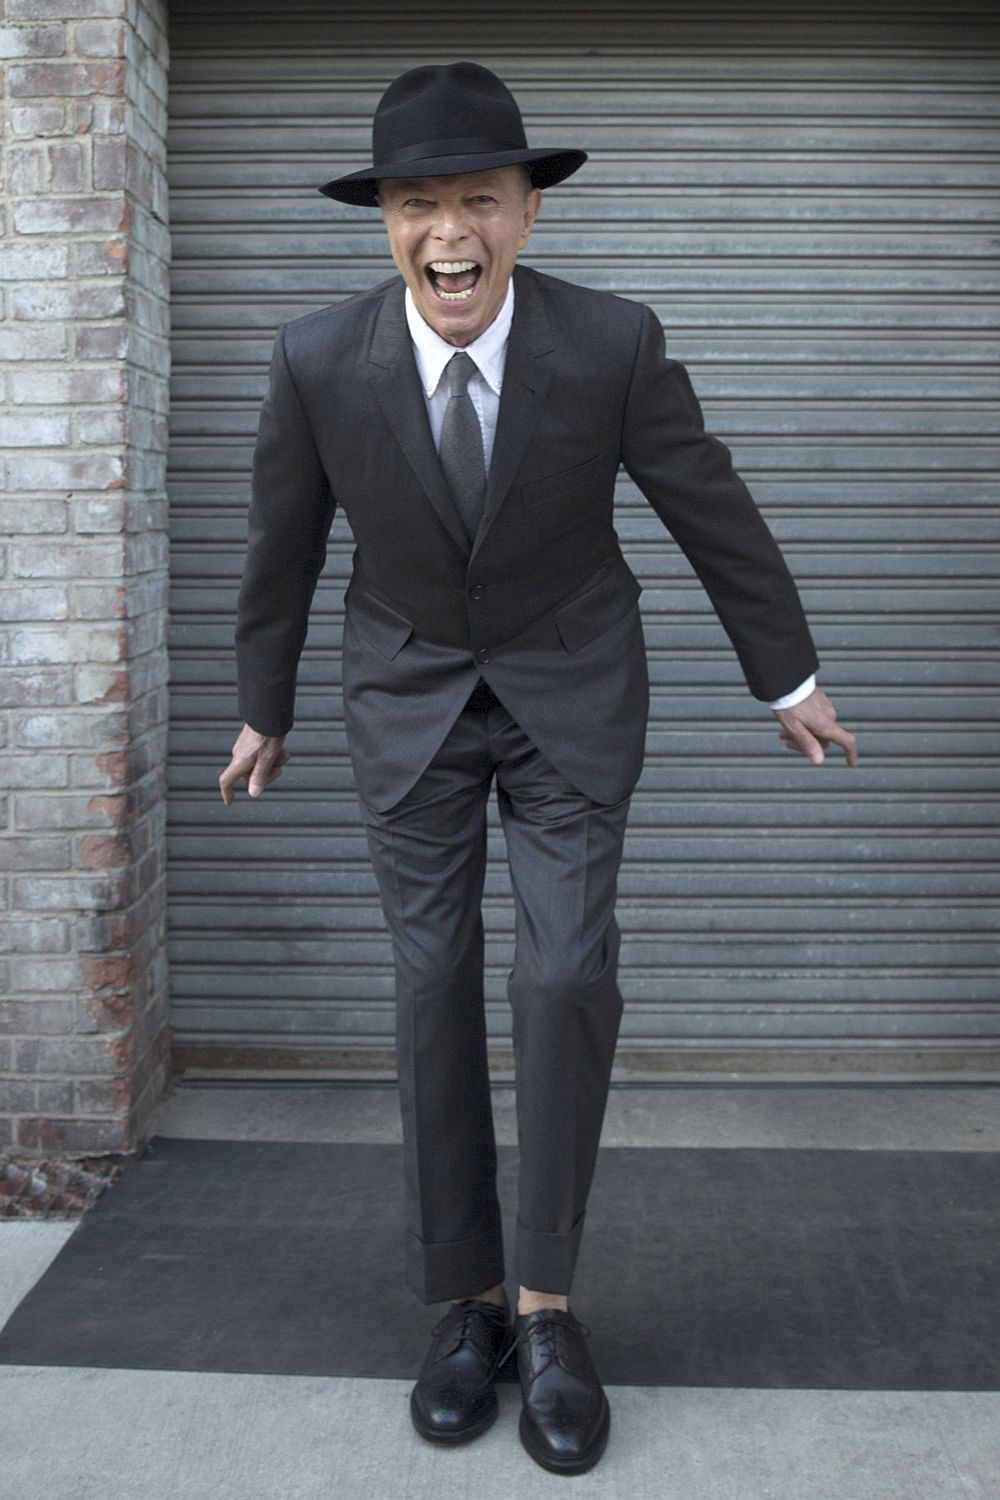 David-Bowie-suit-2016.jpg